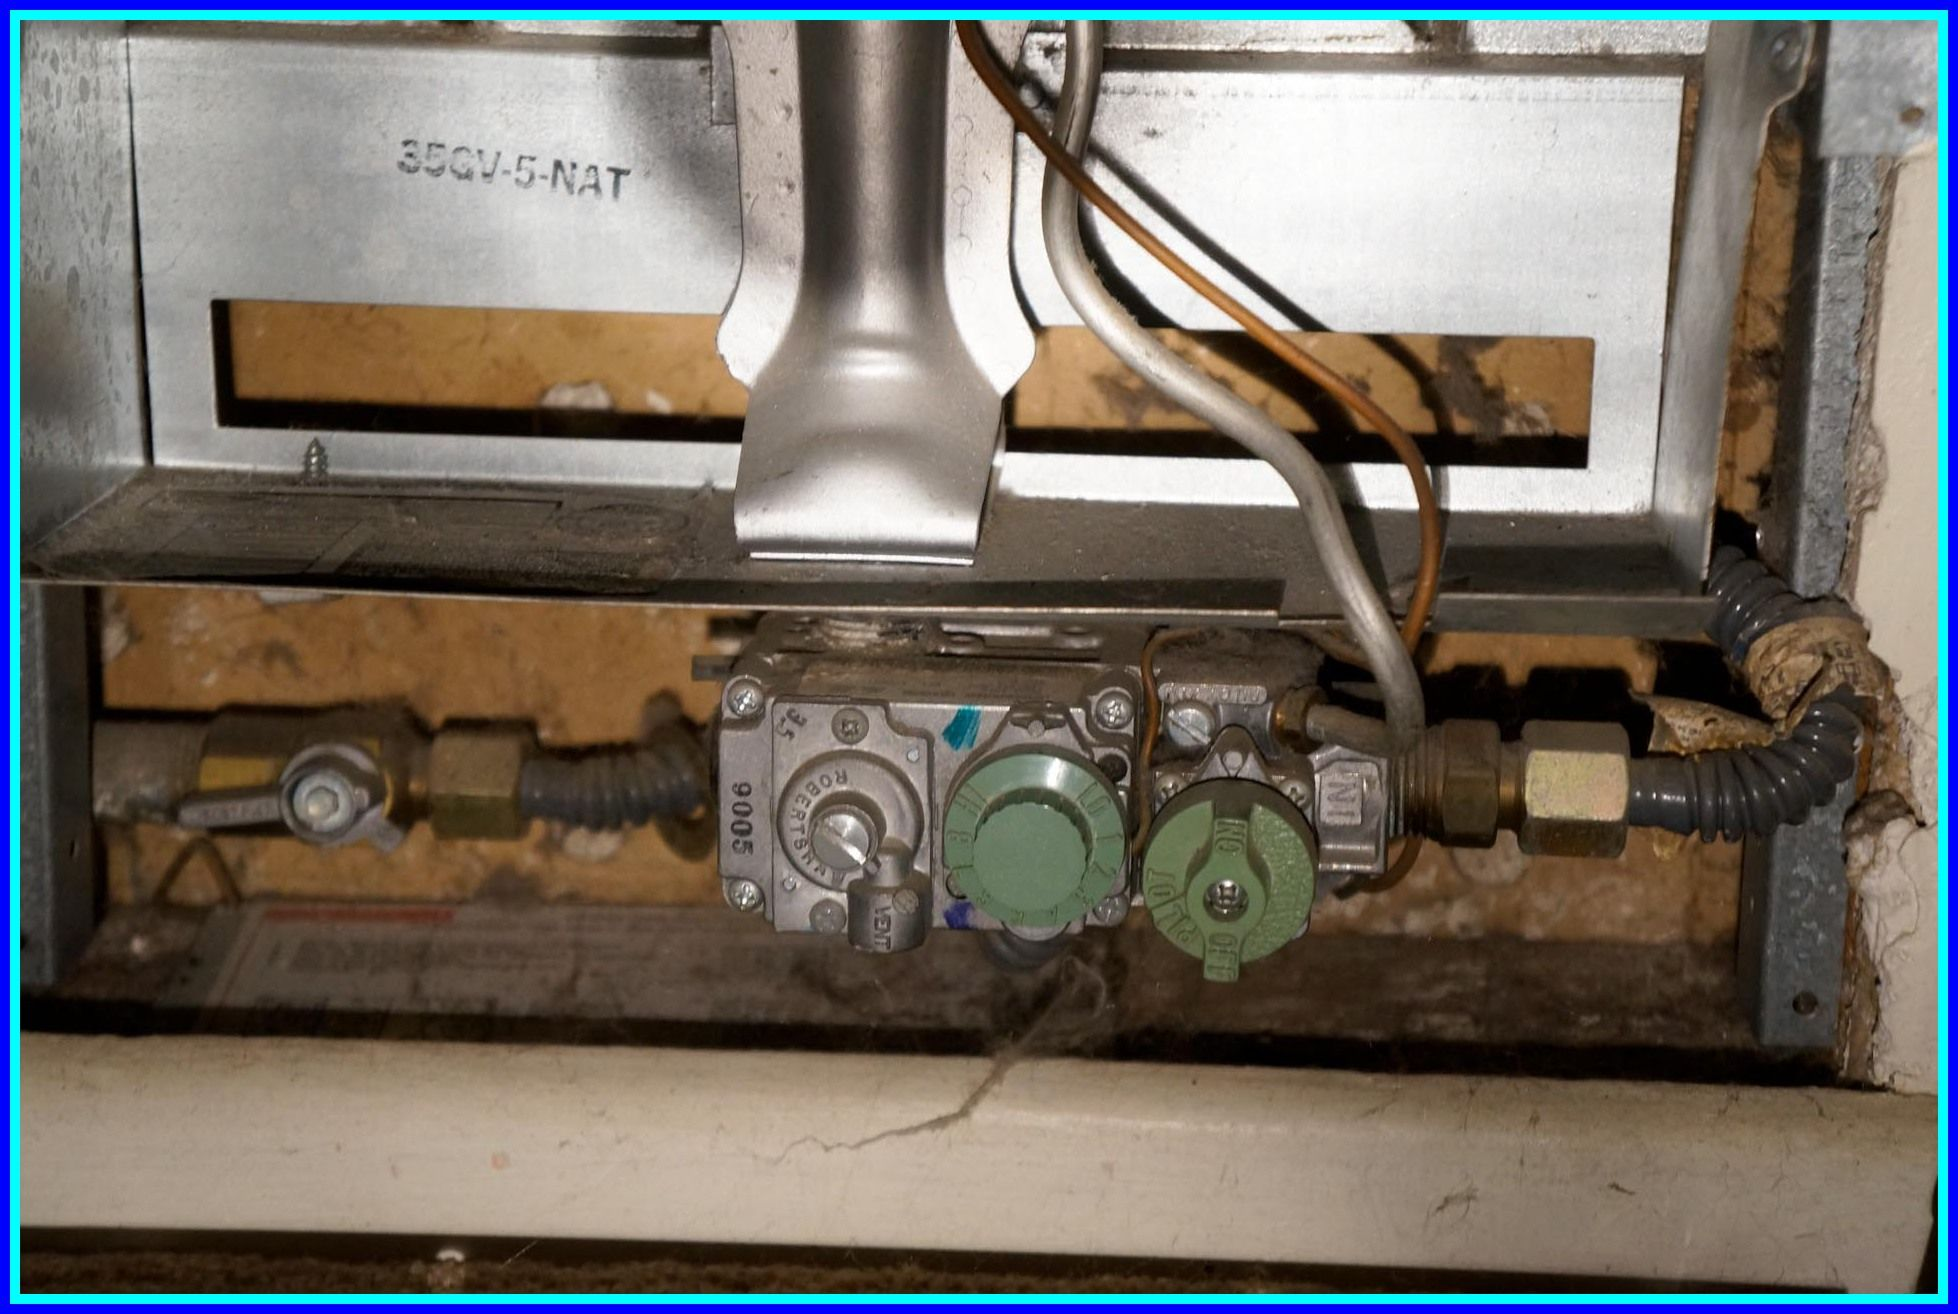 48 reference of pilot light old wall heater in 2020 gas